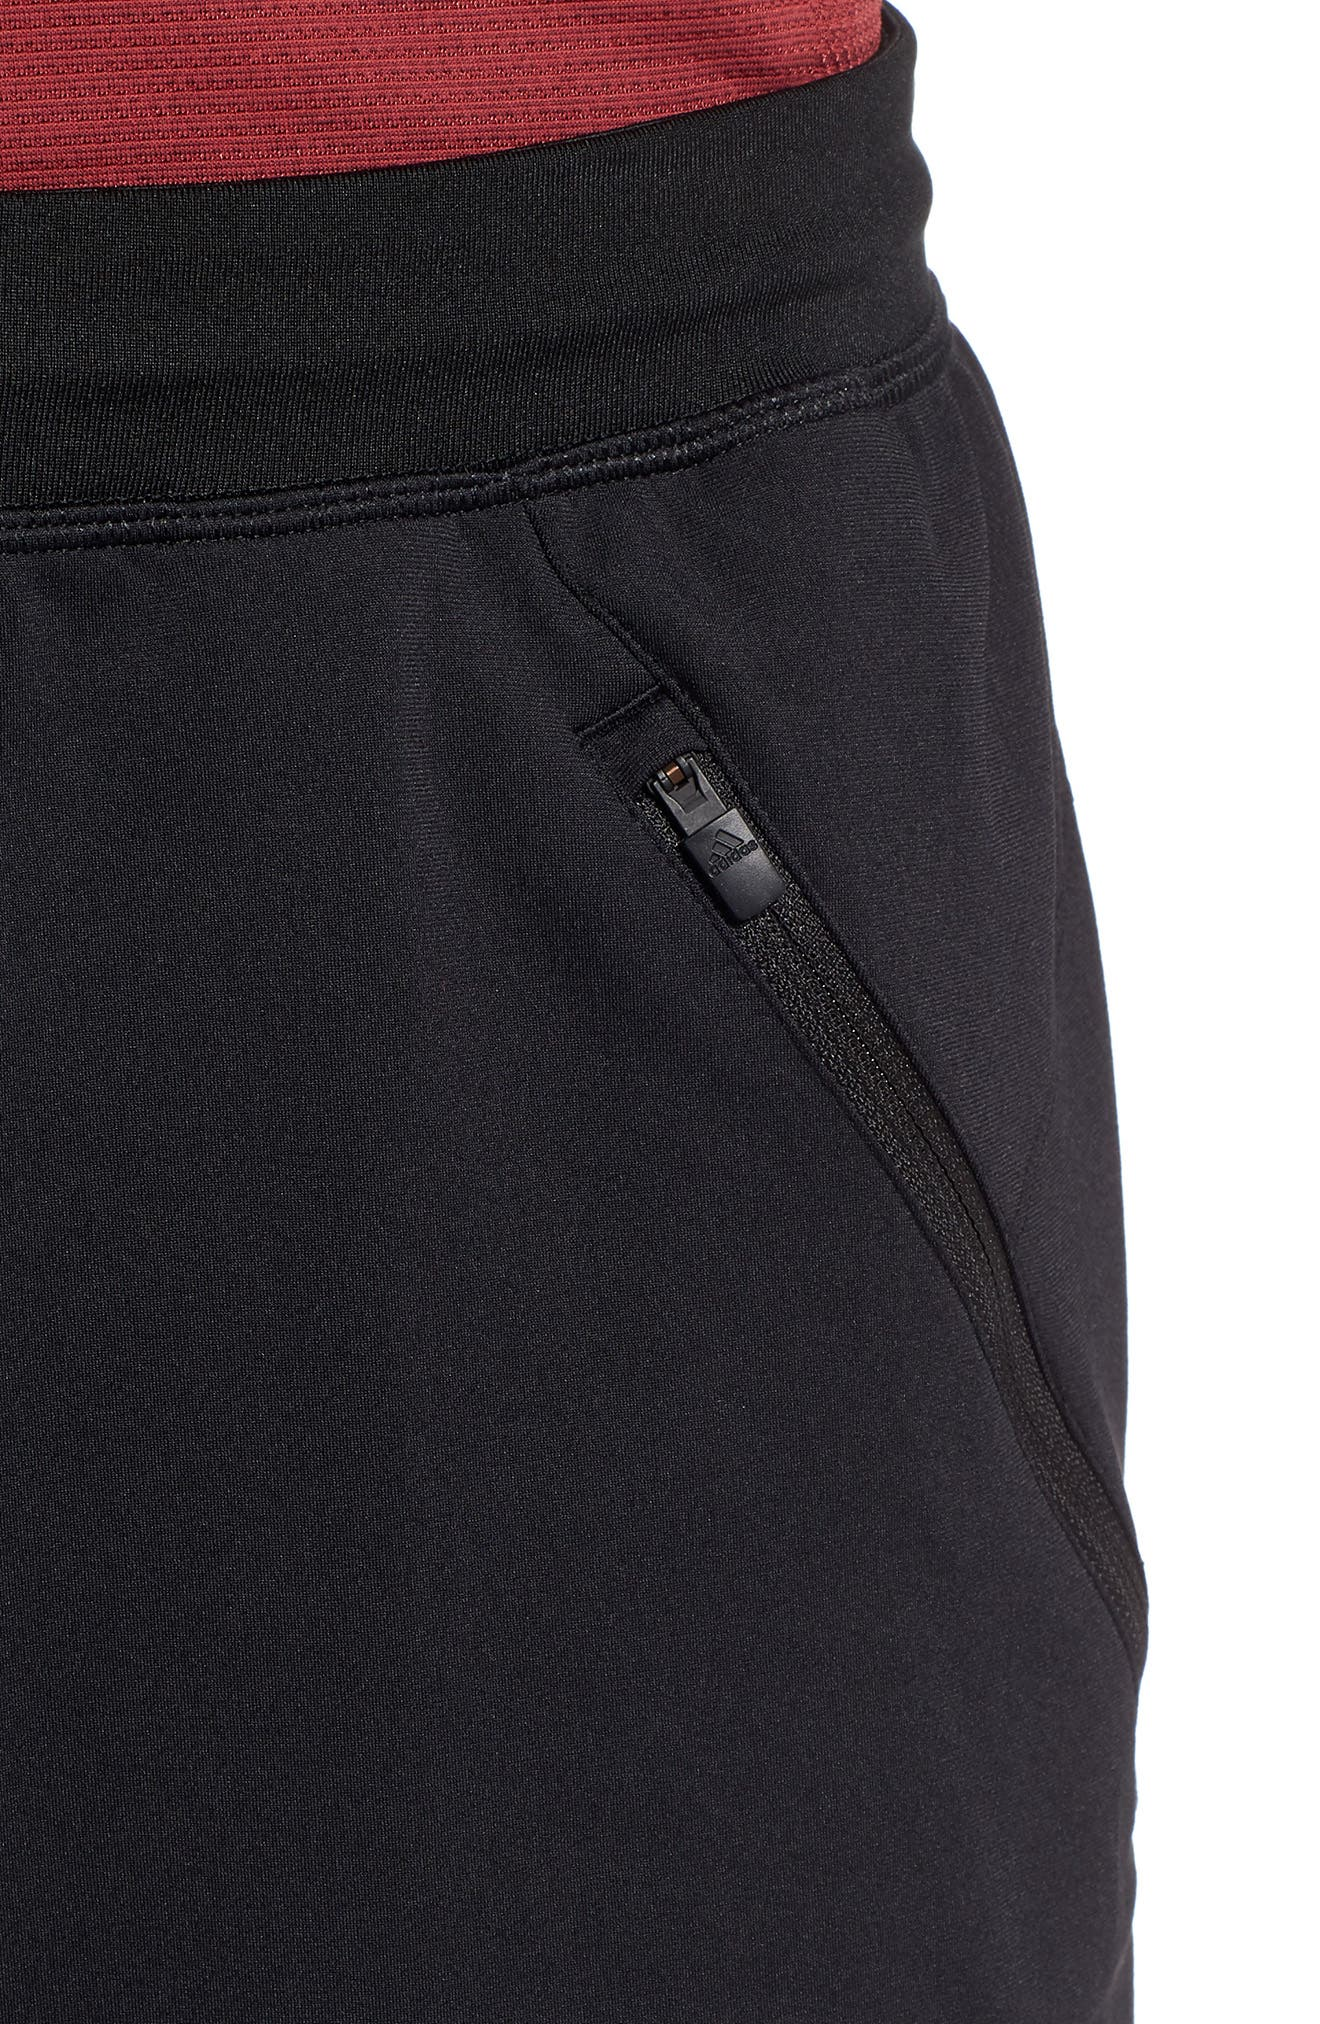 Ultimate Transitional Training Pants,                             Alternate thumbnail 4, color,                             BLACK